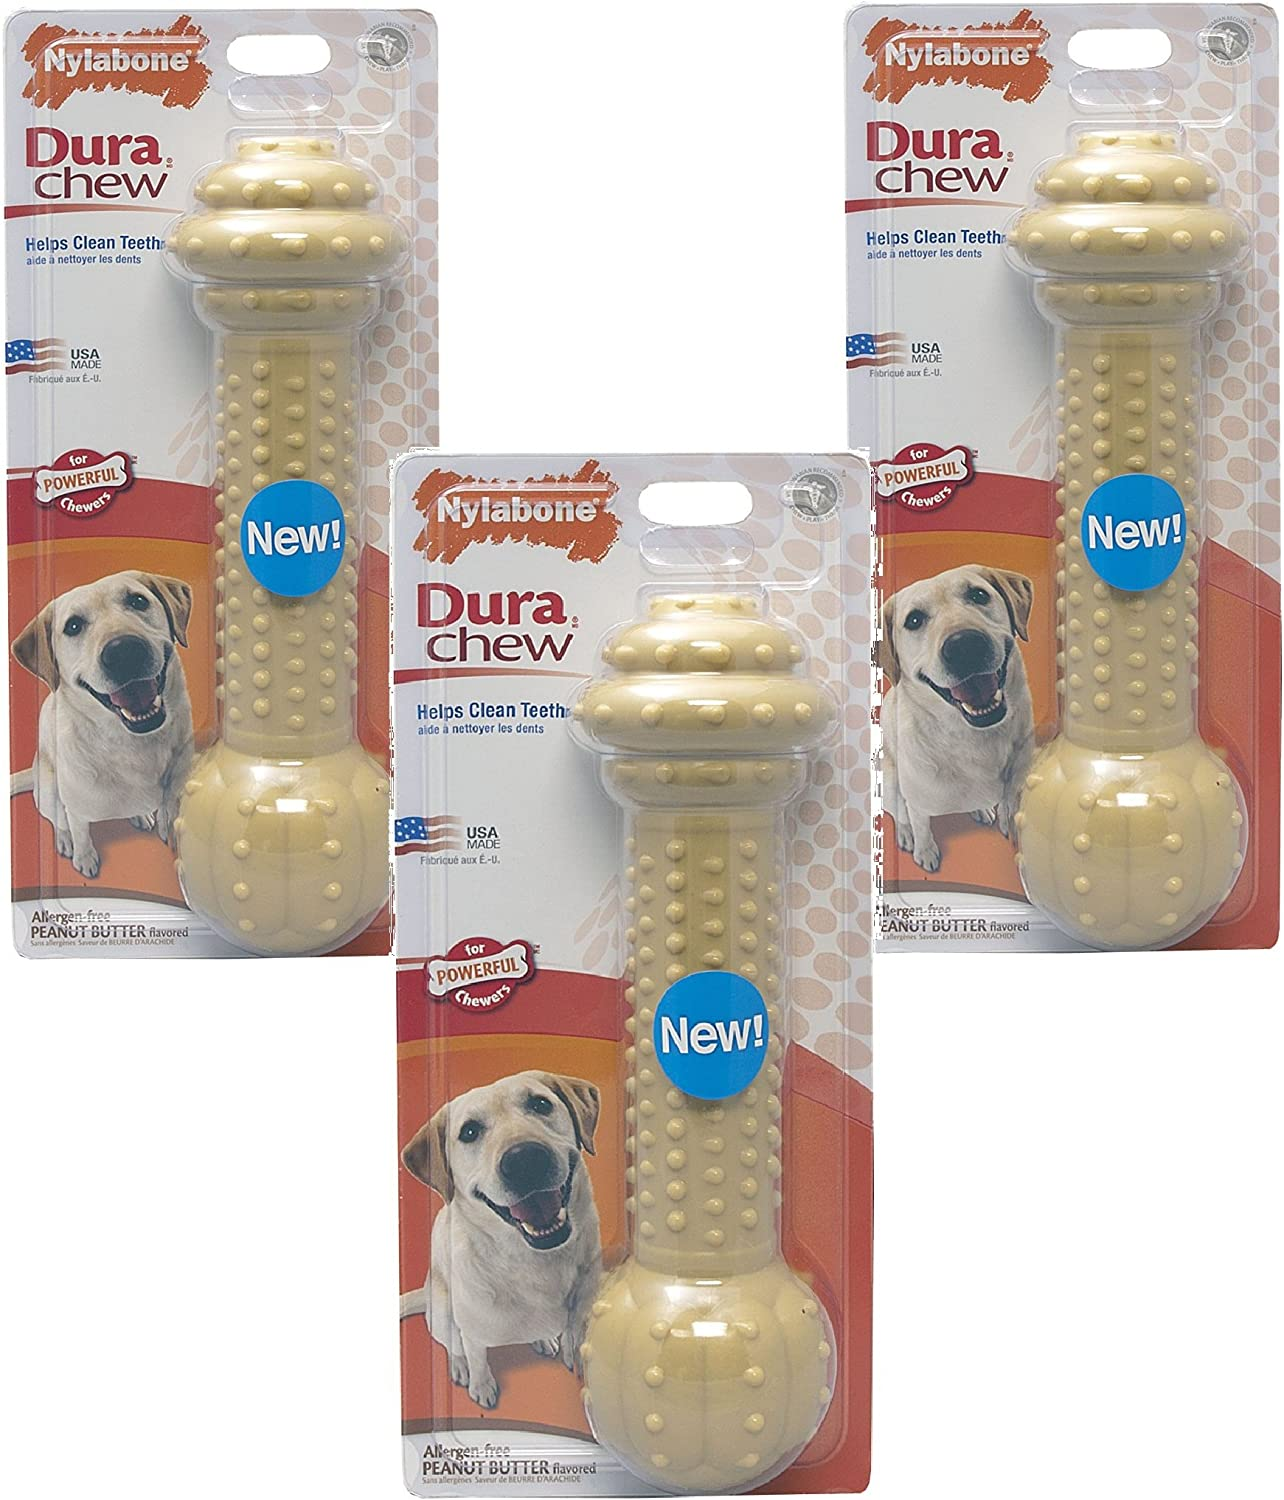 (3 Pack) Nylabone Monster XL Dura Chew Barbell Dog Chew Toy  Peanut Butter Flavored